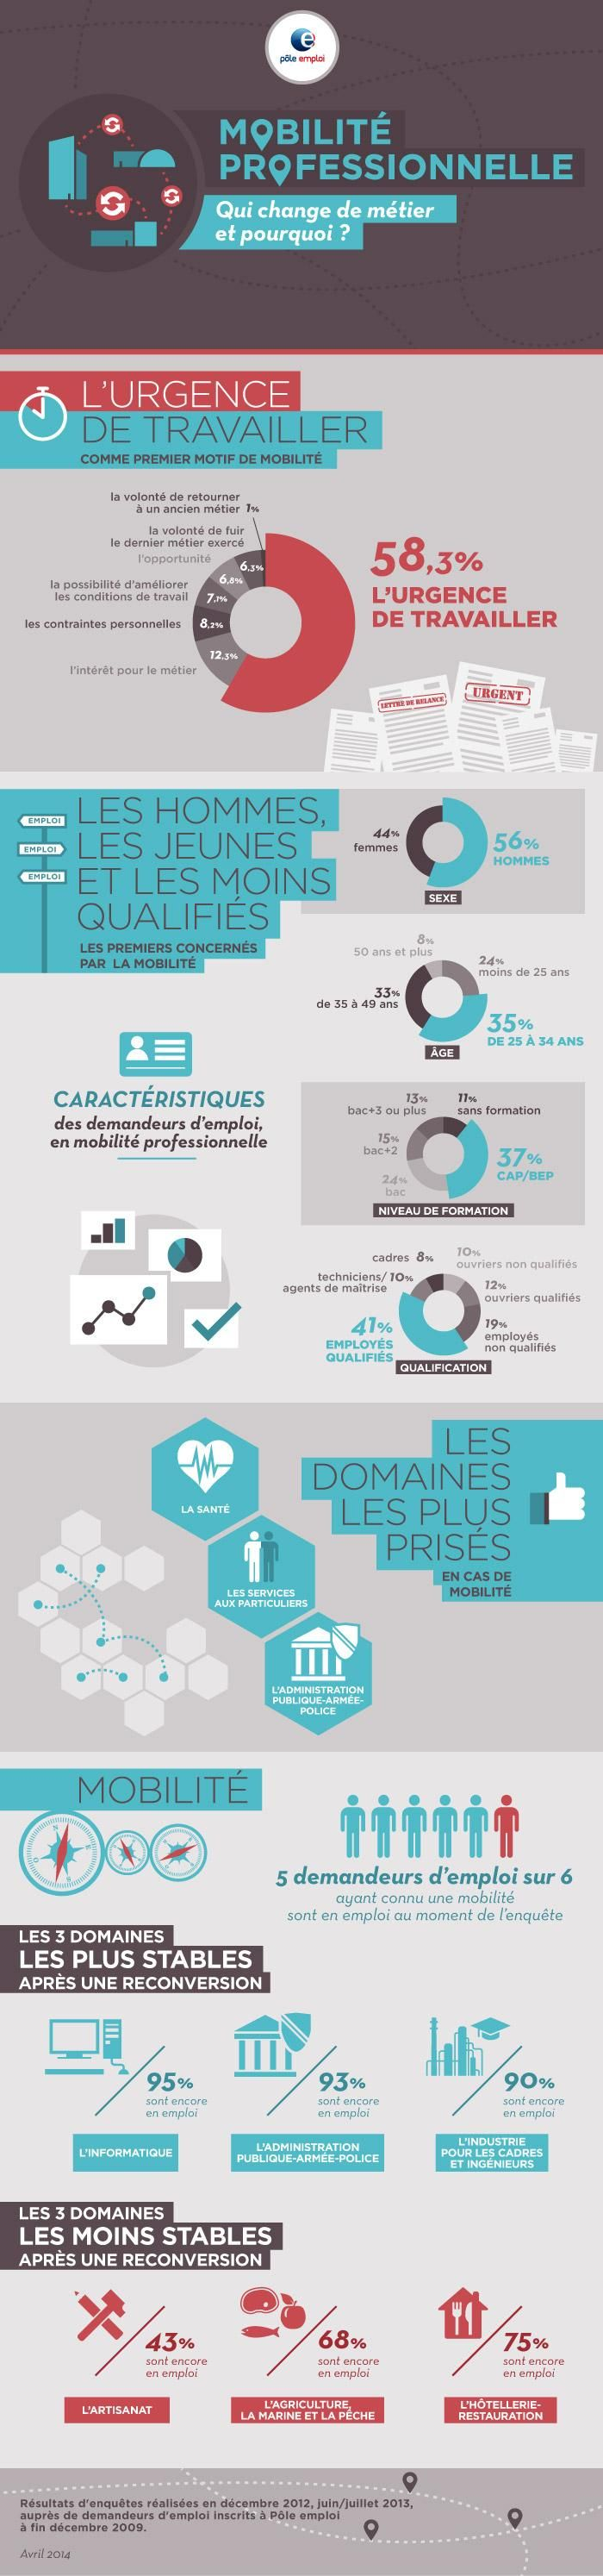 16 best images about infographies on pinterest